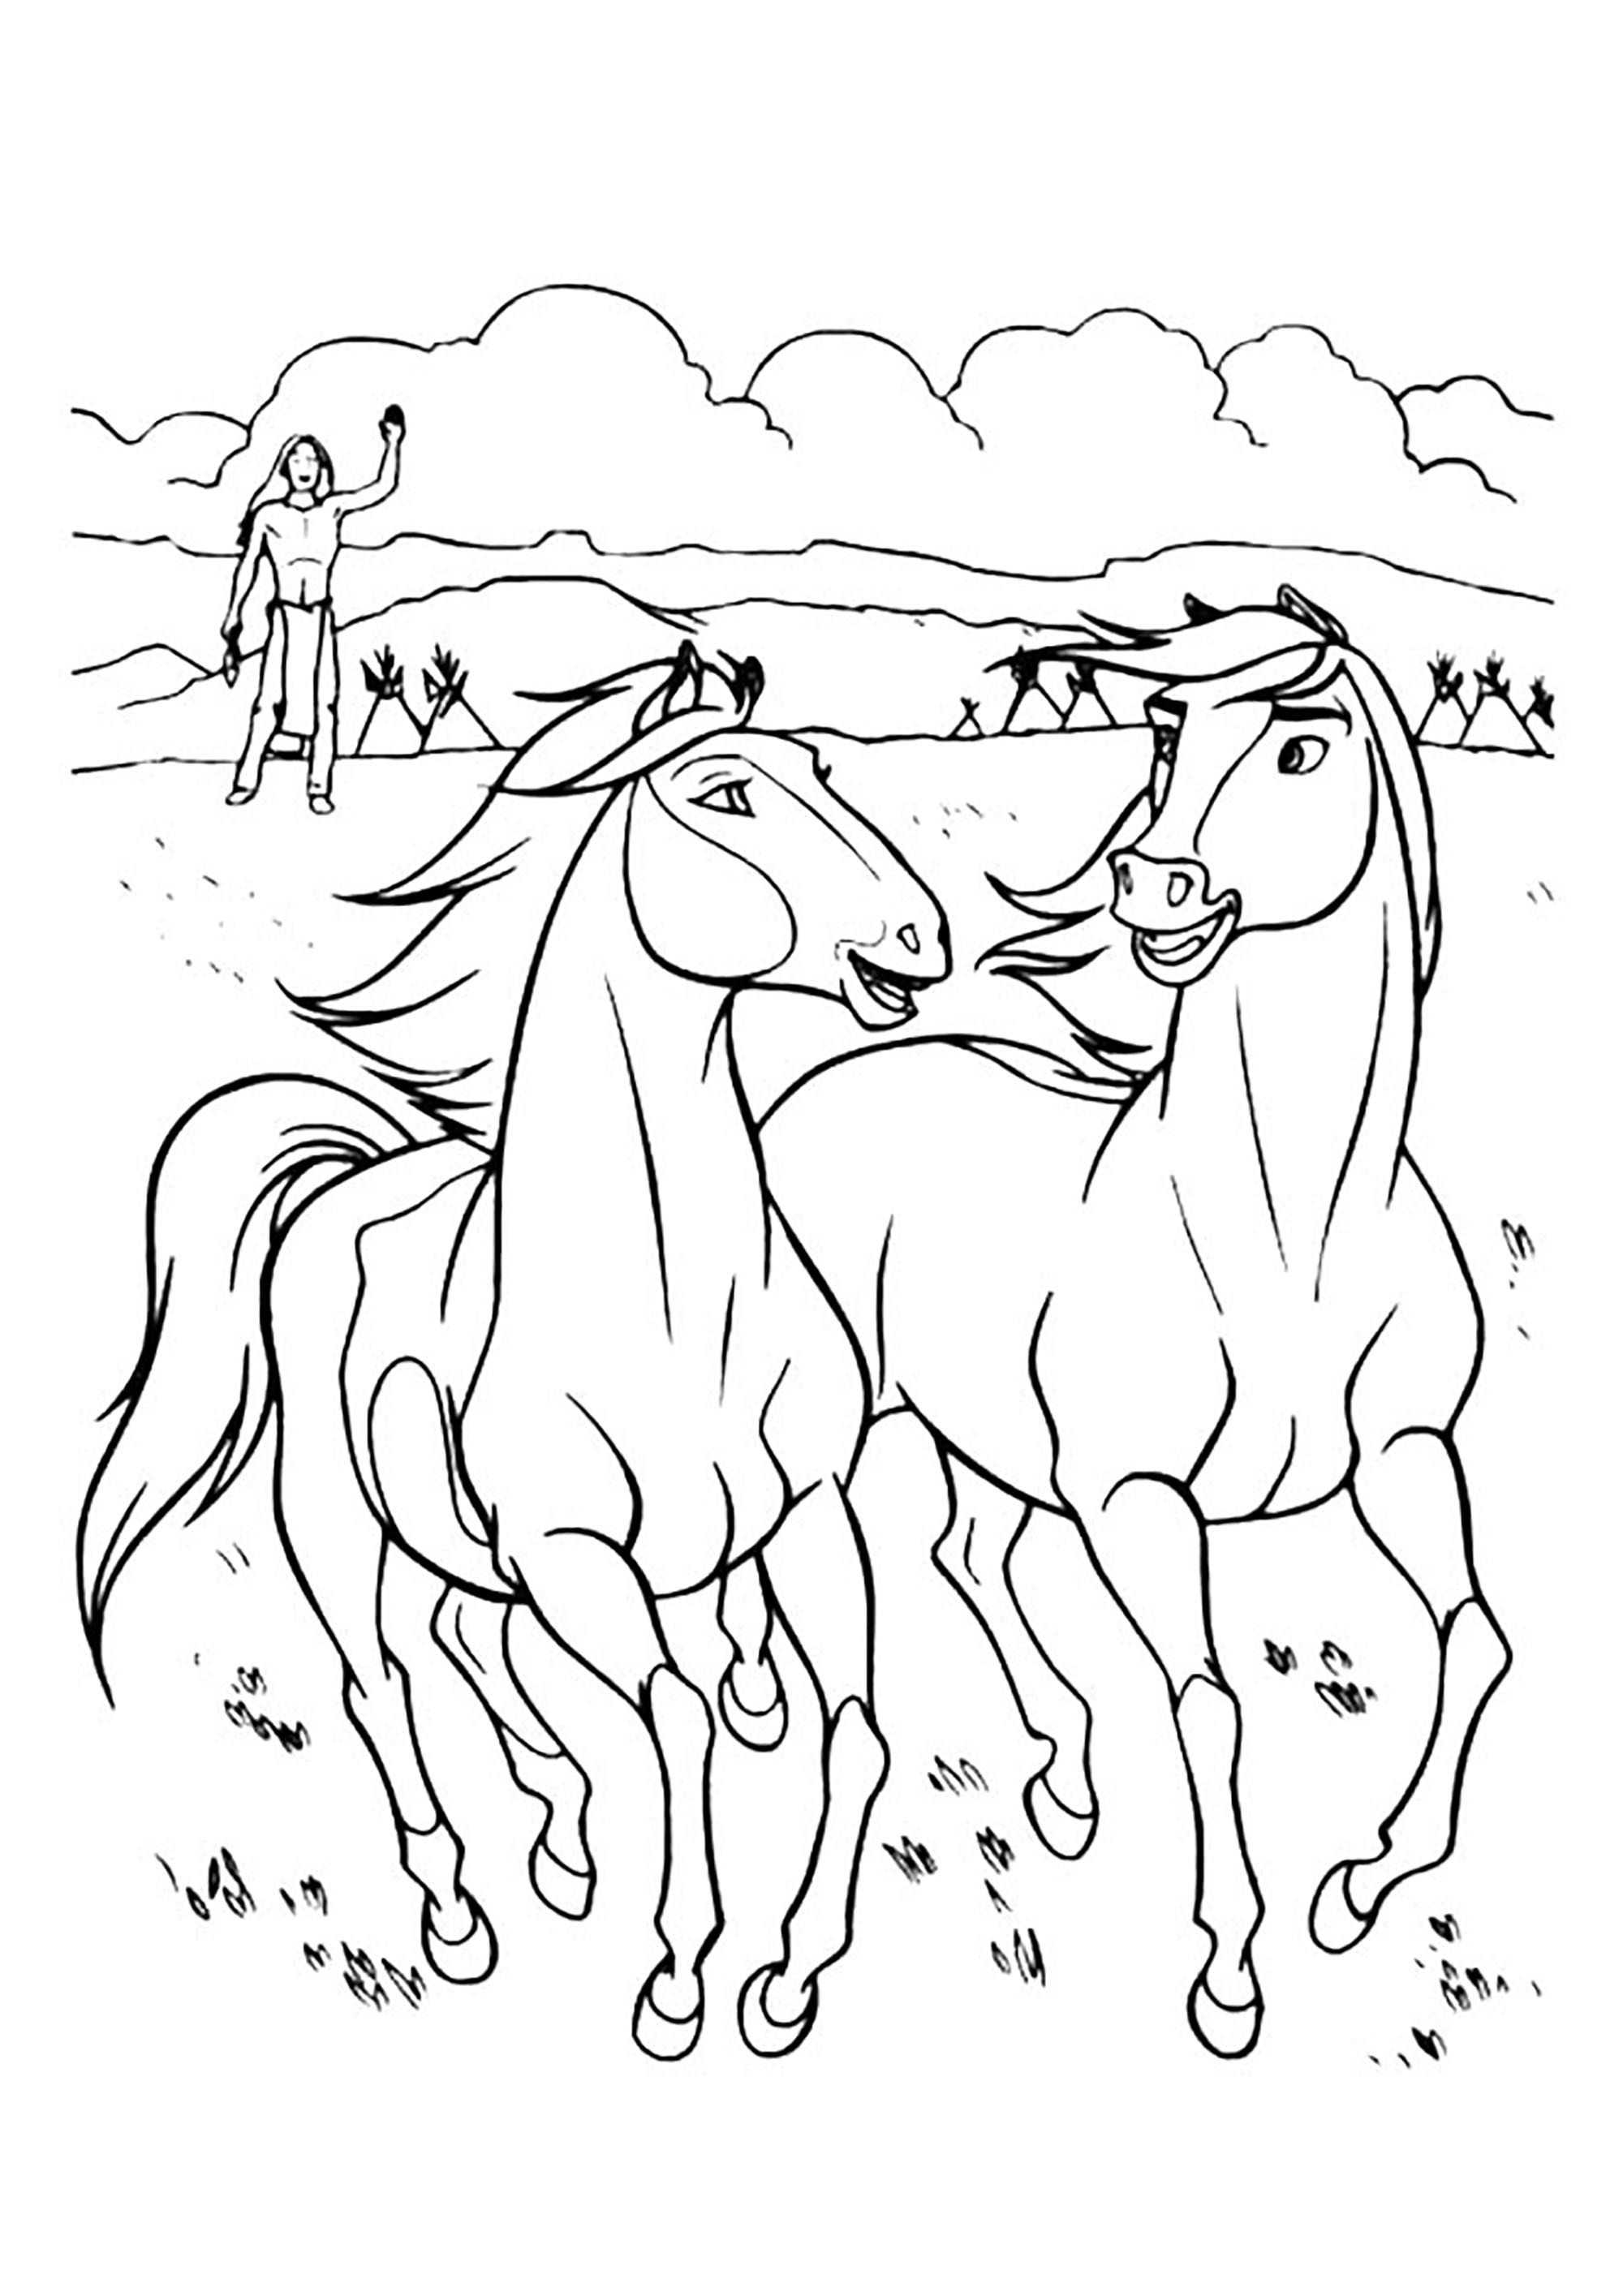 Spirit coloring page to print and color for free